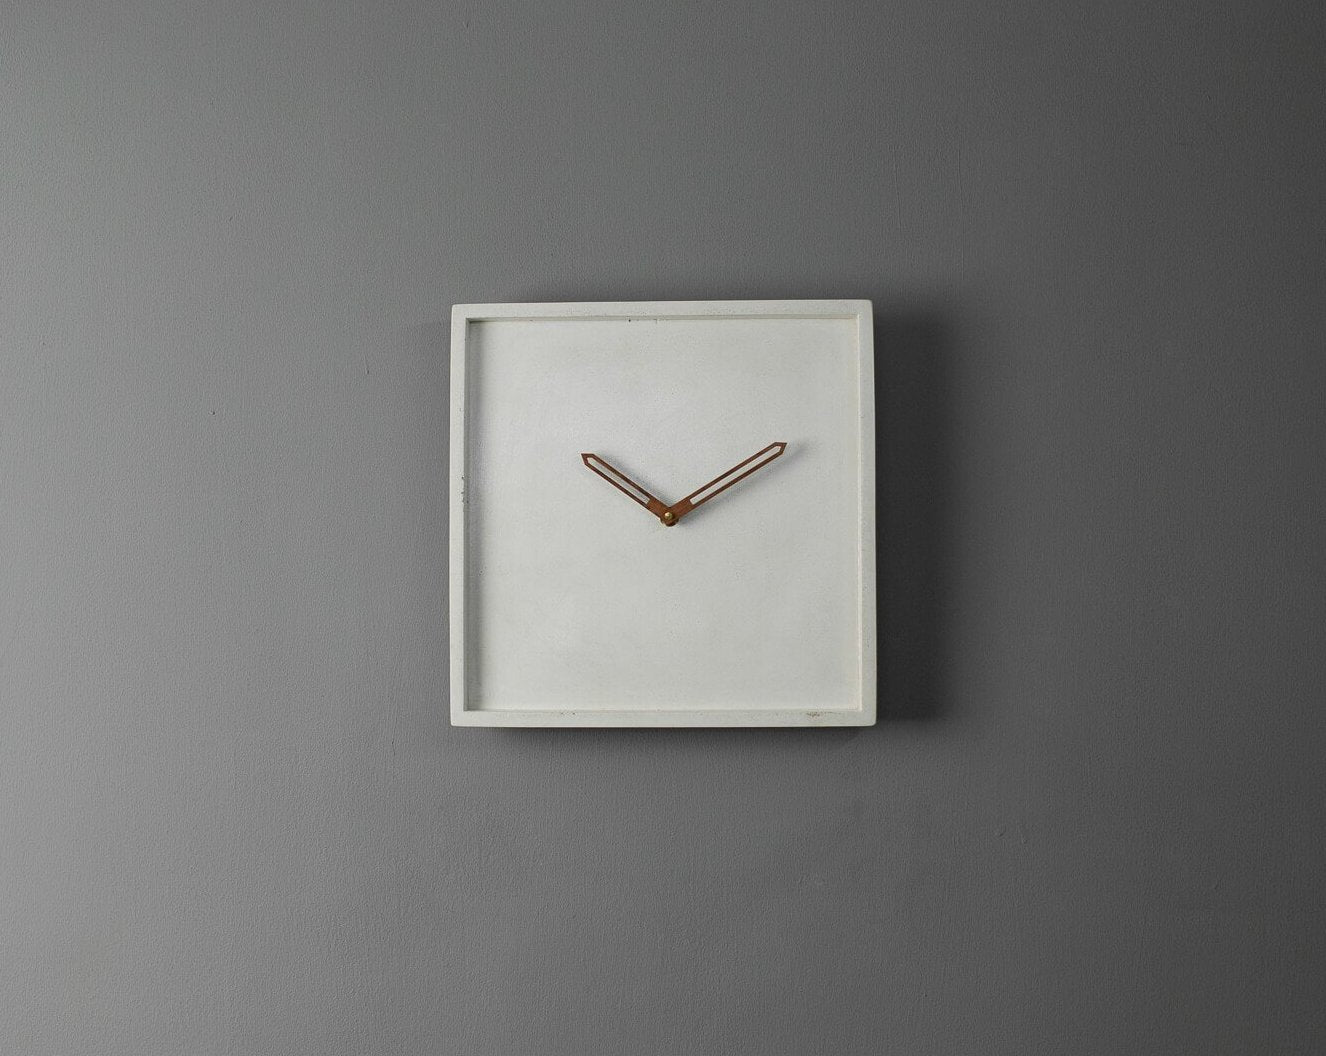 Concrete Square Wall Clock White-Eliteearth